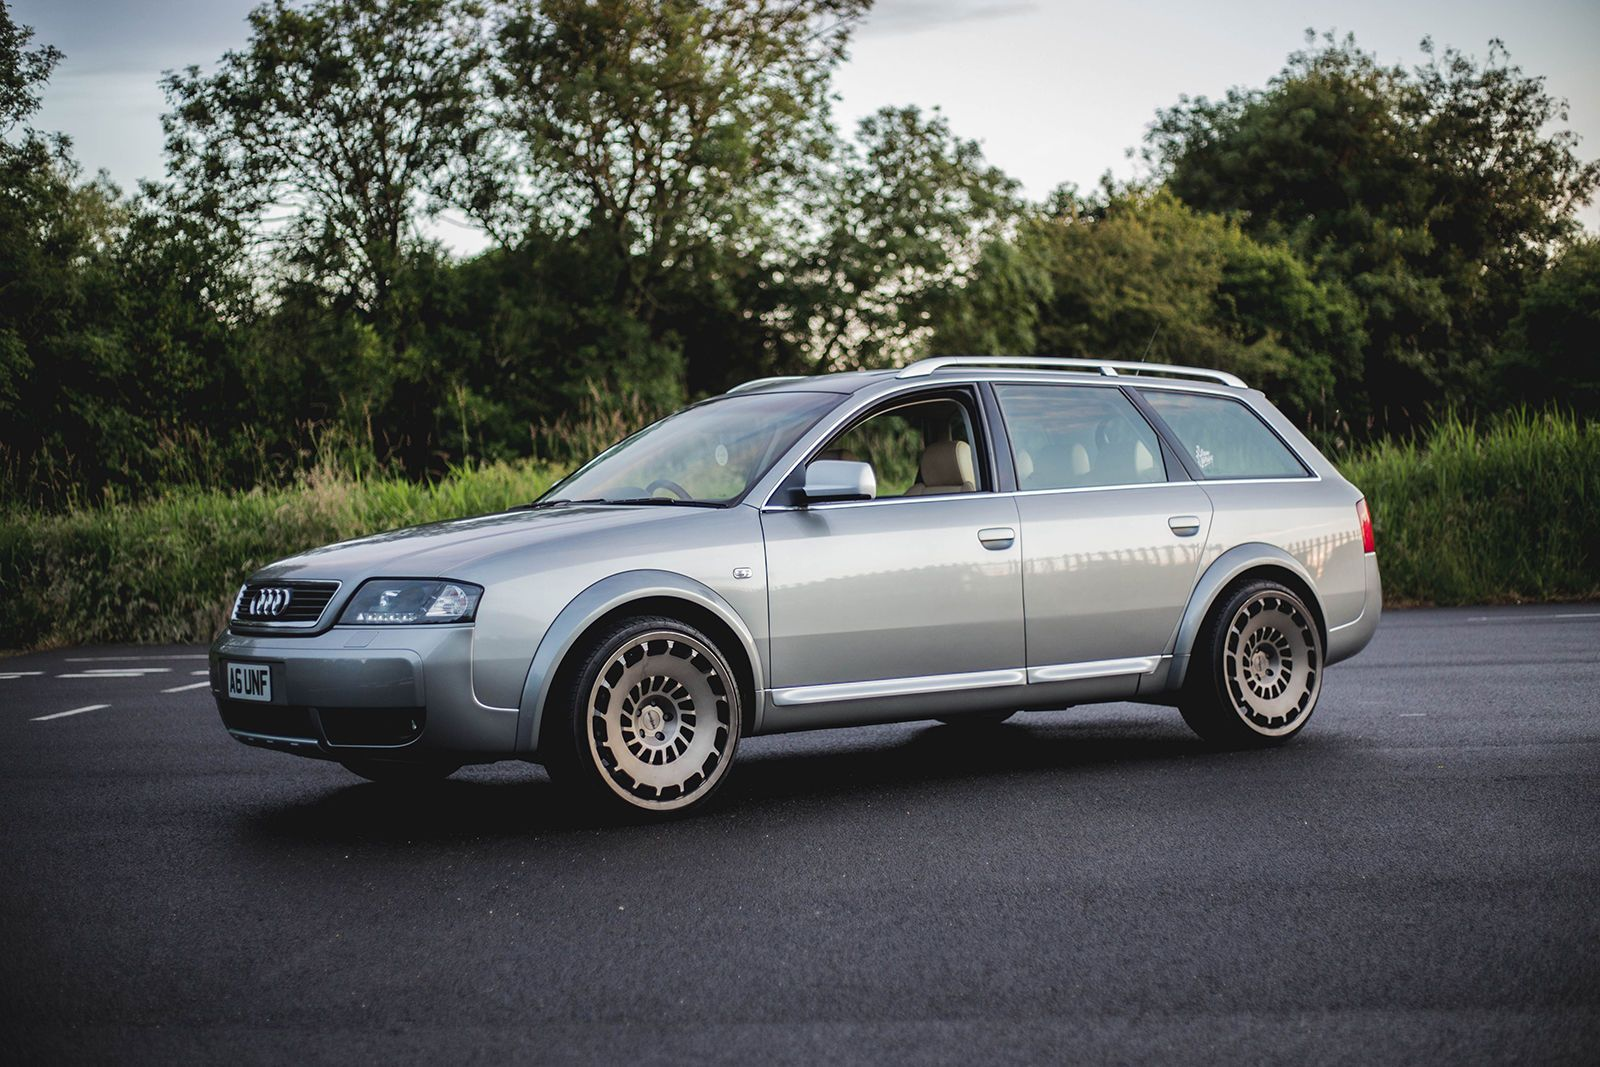 Audi C5 A6 Allroad 2 5tdi Air Lift V2 Suspension Rotiform Ccv Recaro Rs6